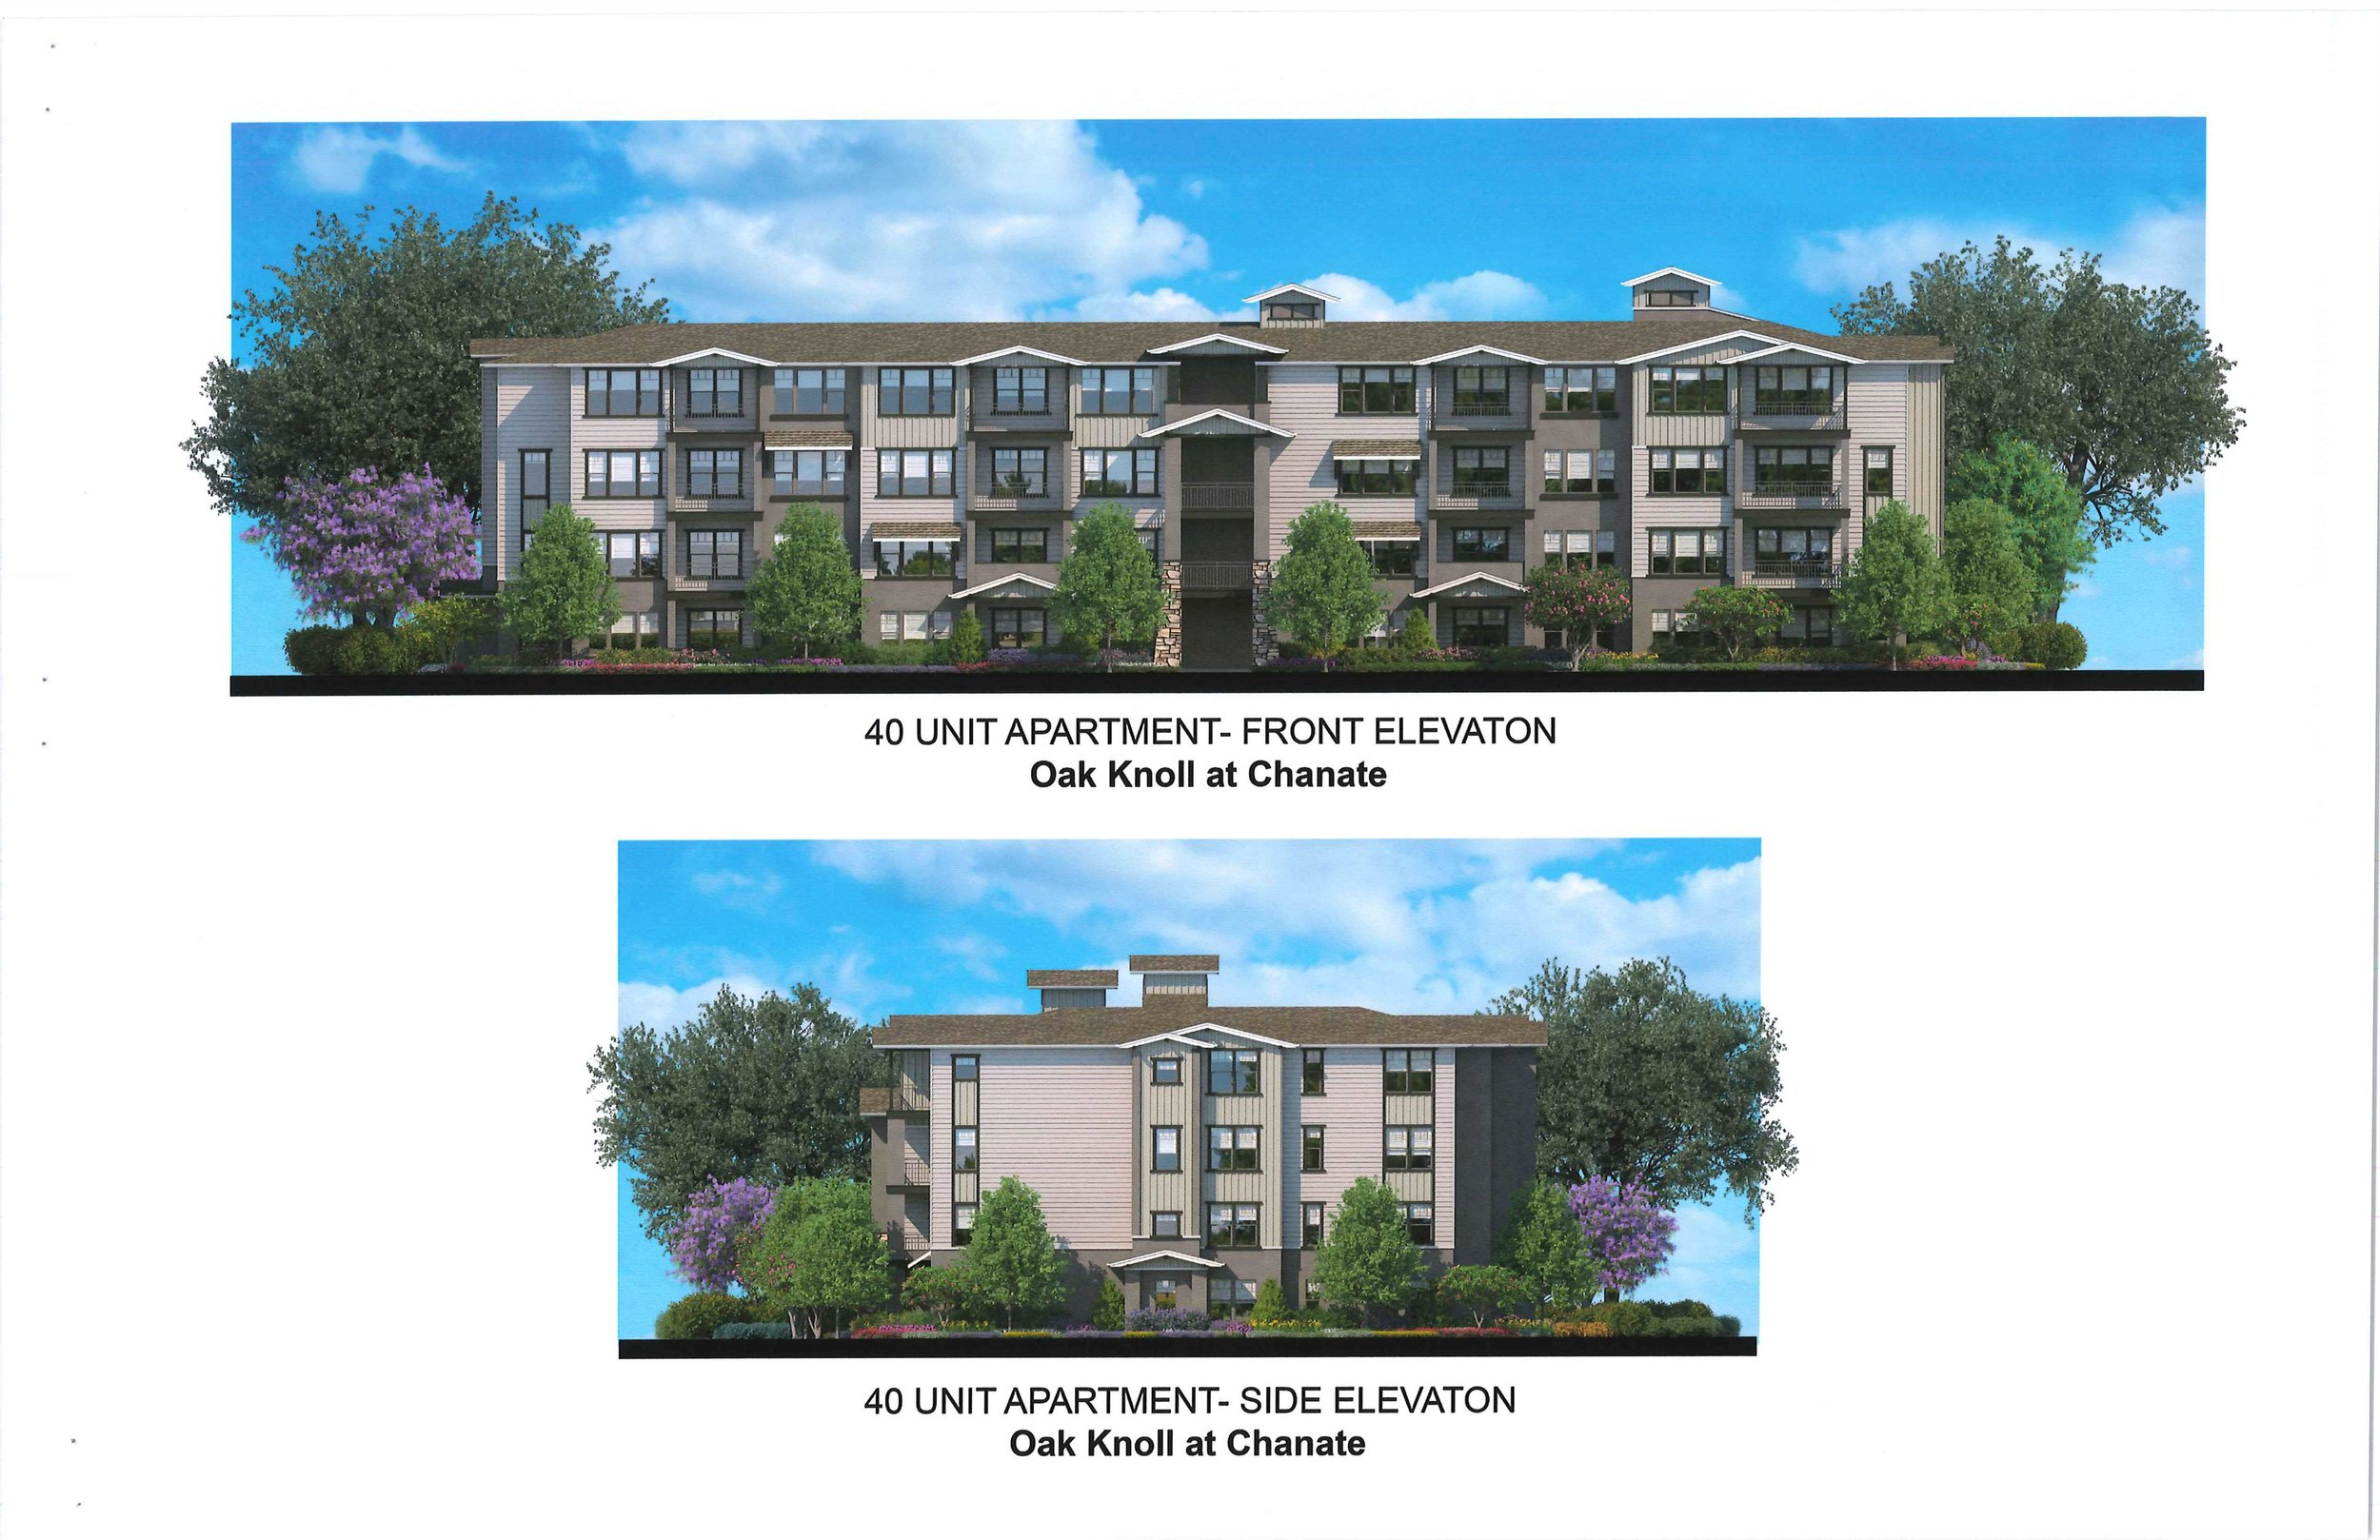 This is the conceptual elevation of a four story apartment building with 40 units for the Senior Housing Facility in this development.Two 40 unit four story buildings and three 60 unit four story buildings are planned for the Senior Facility. A total of 260 Senior units are planned.